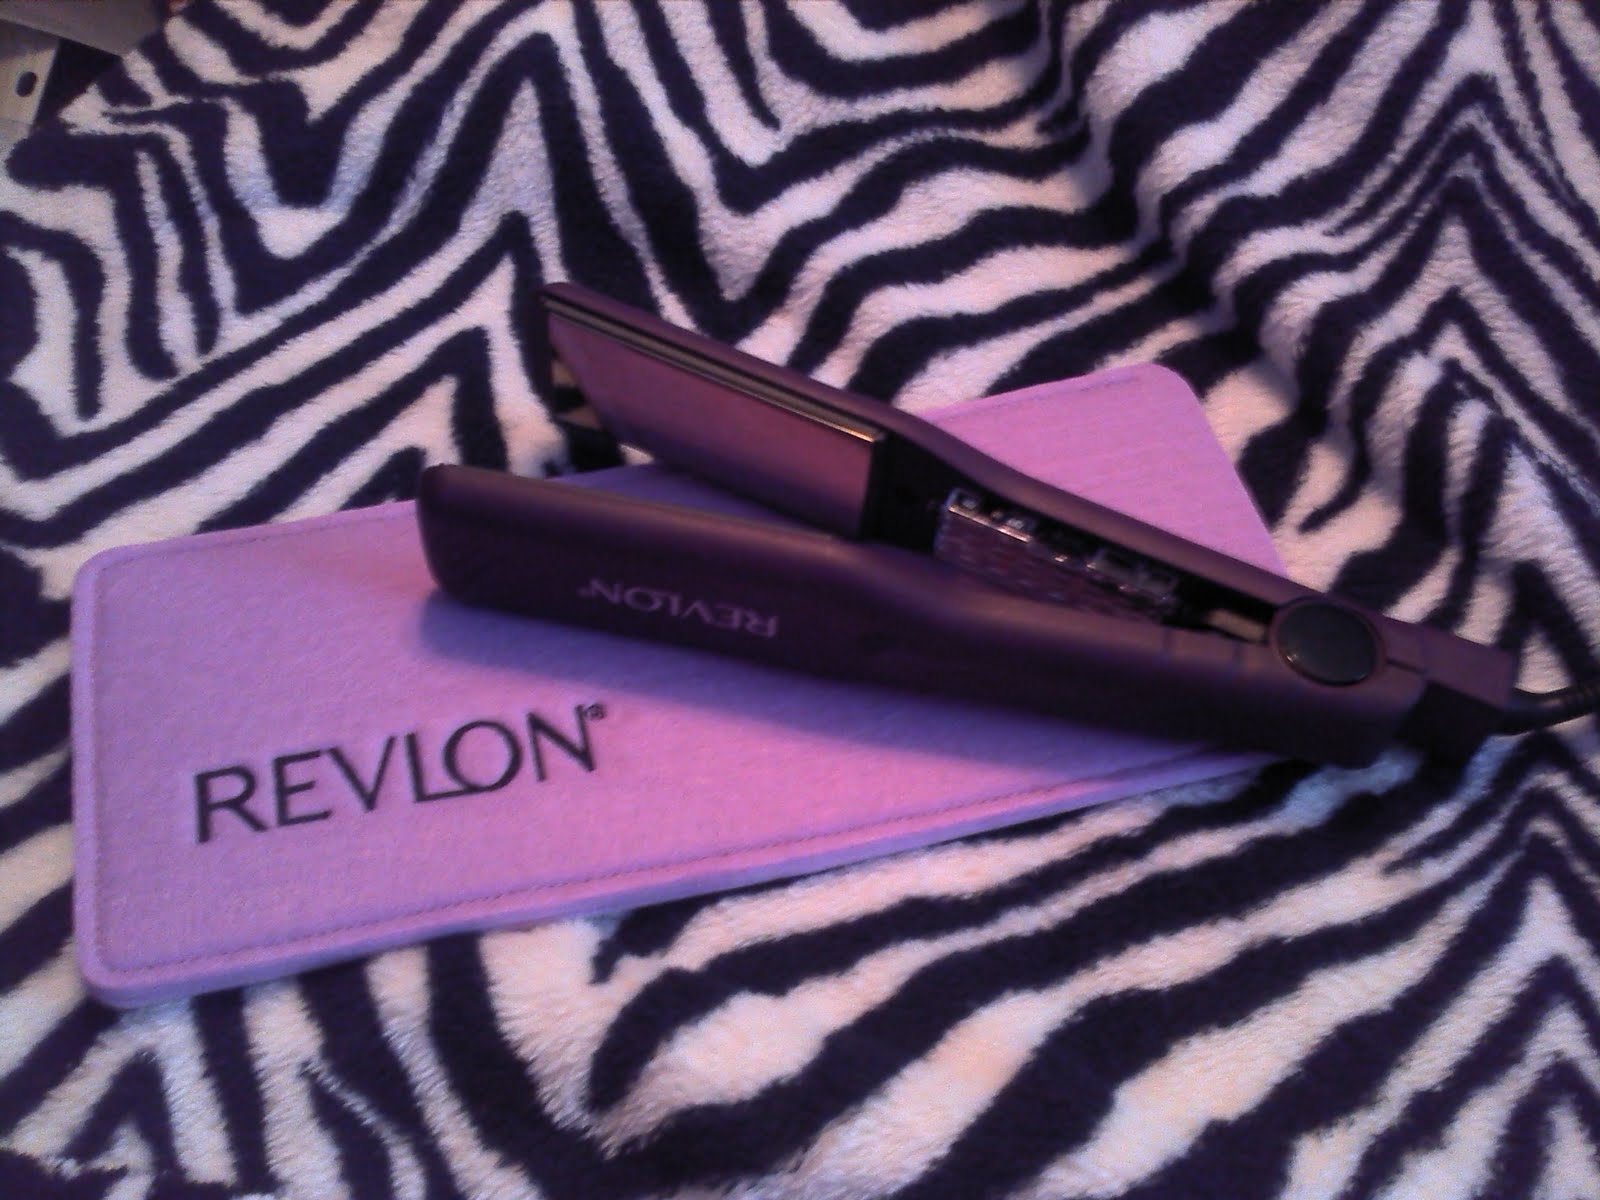 Hair Makeup Fashion Revlon Straightener Review